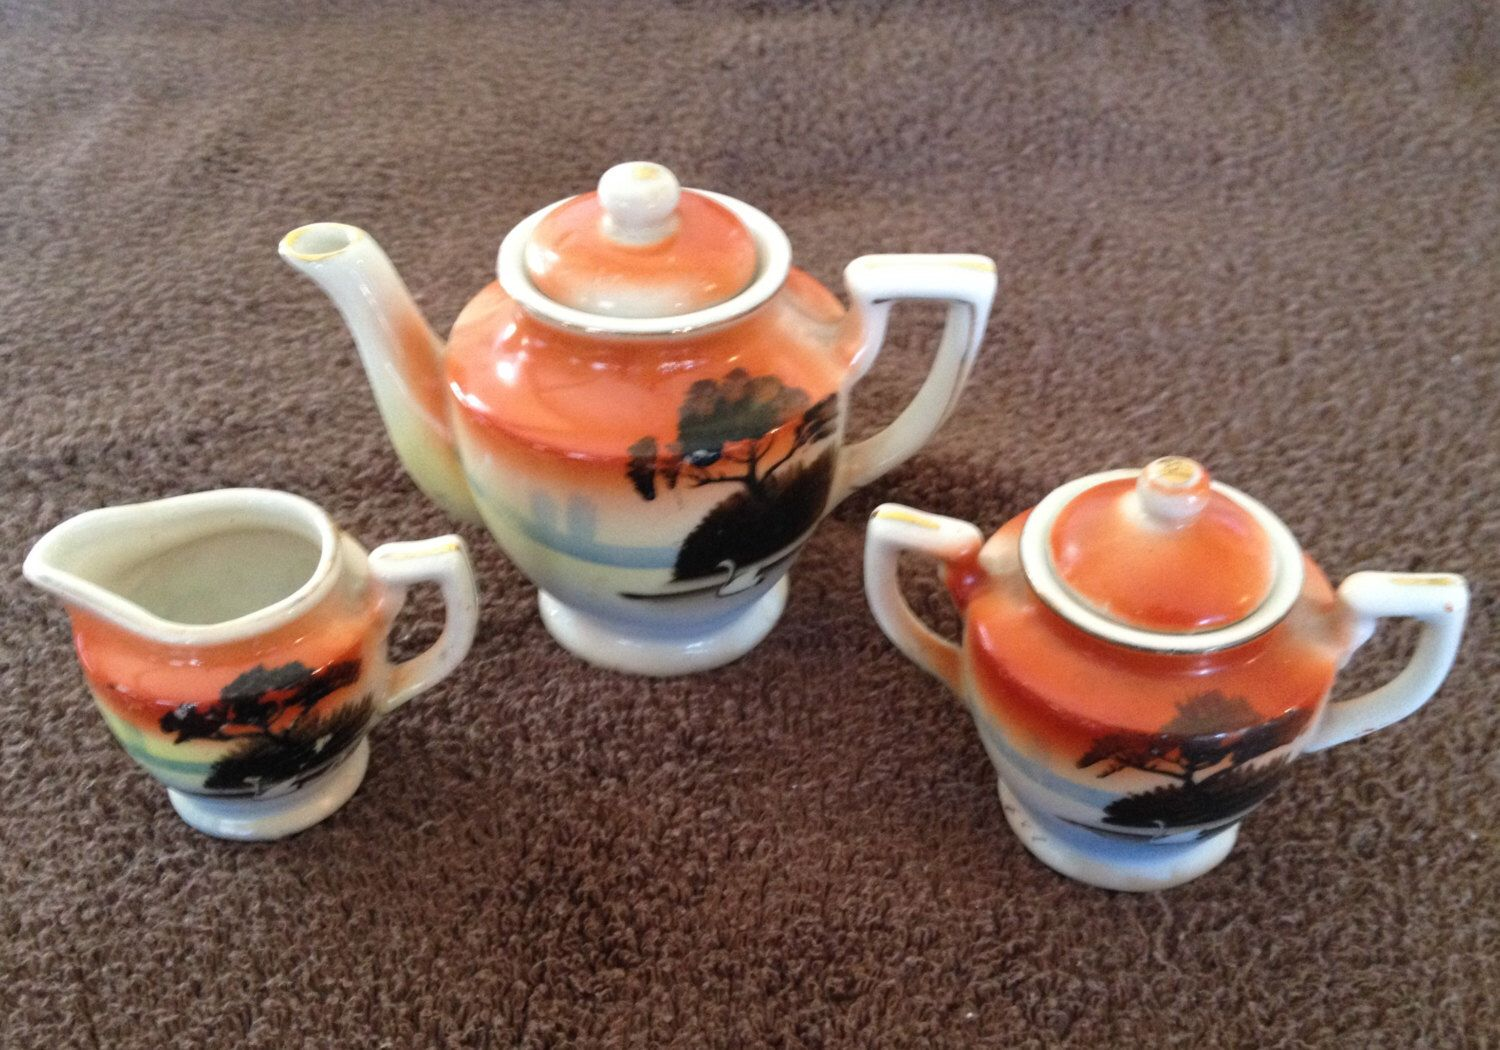 Pin by ThriftyGal7 on Money In the Bank | Tea pots, Tea set, Tea